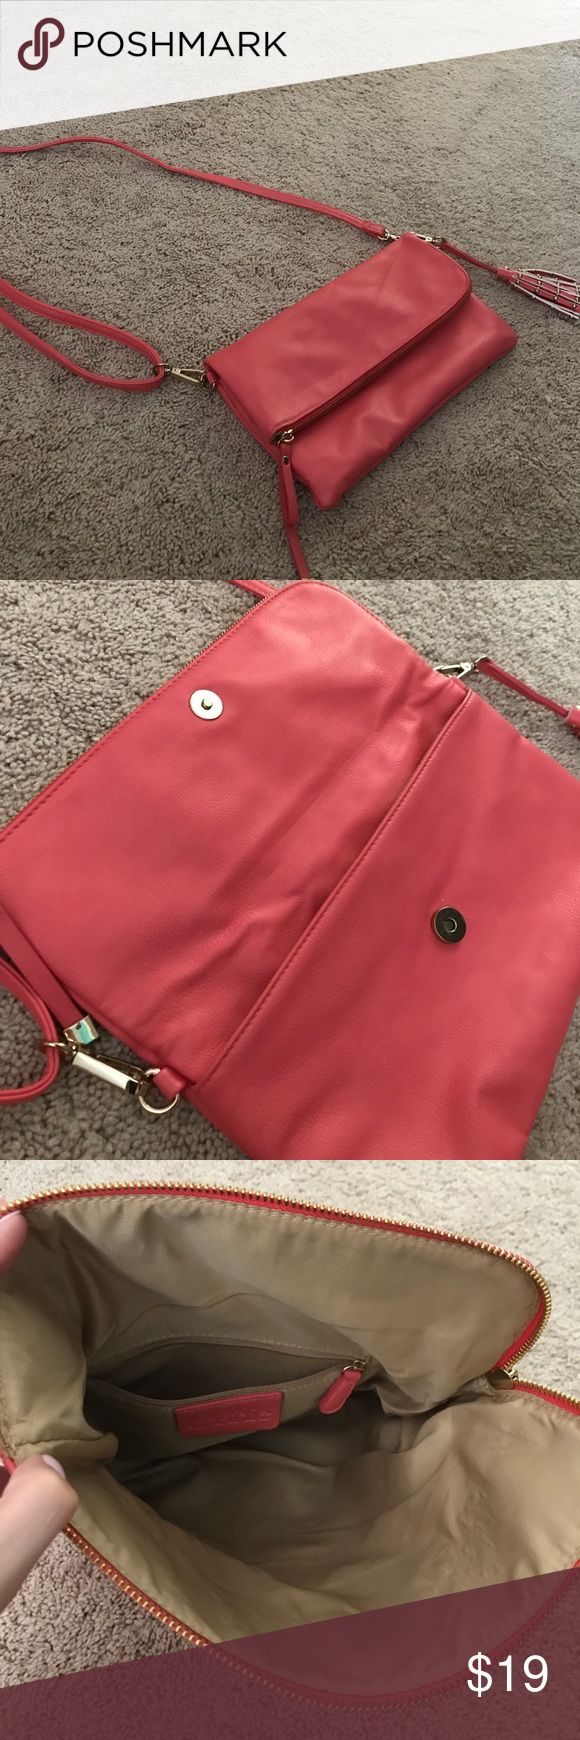 Coral crossbody Excellent condition, used once for a couple hours. Flops over and has a zipper part and opens up to a pocket. Has small pocket inside sipper part Charming Charlie Bags Crossbody Bags